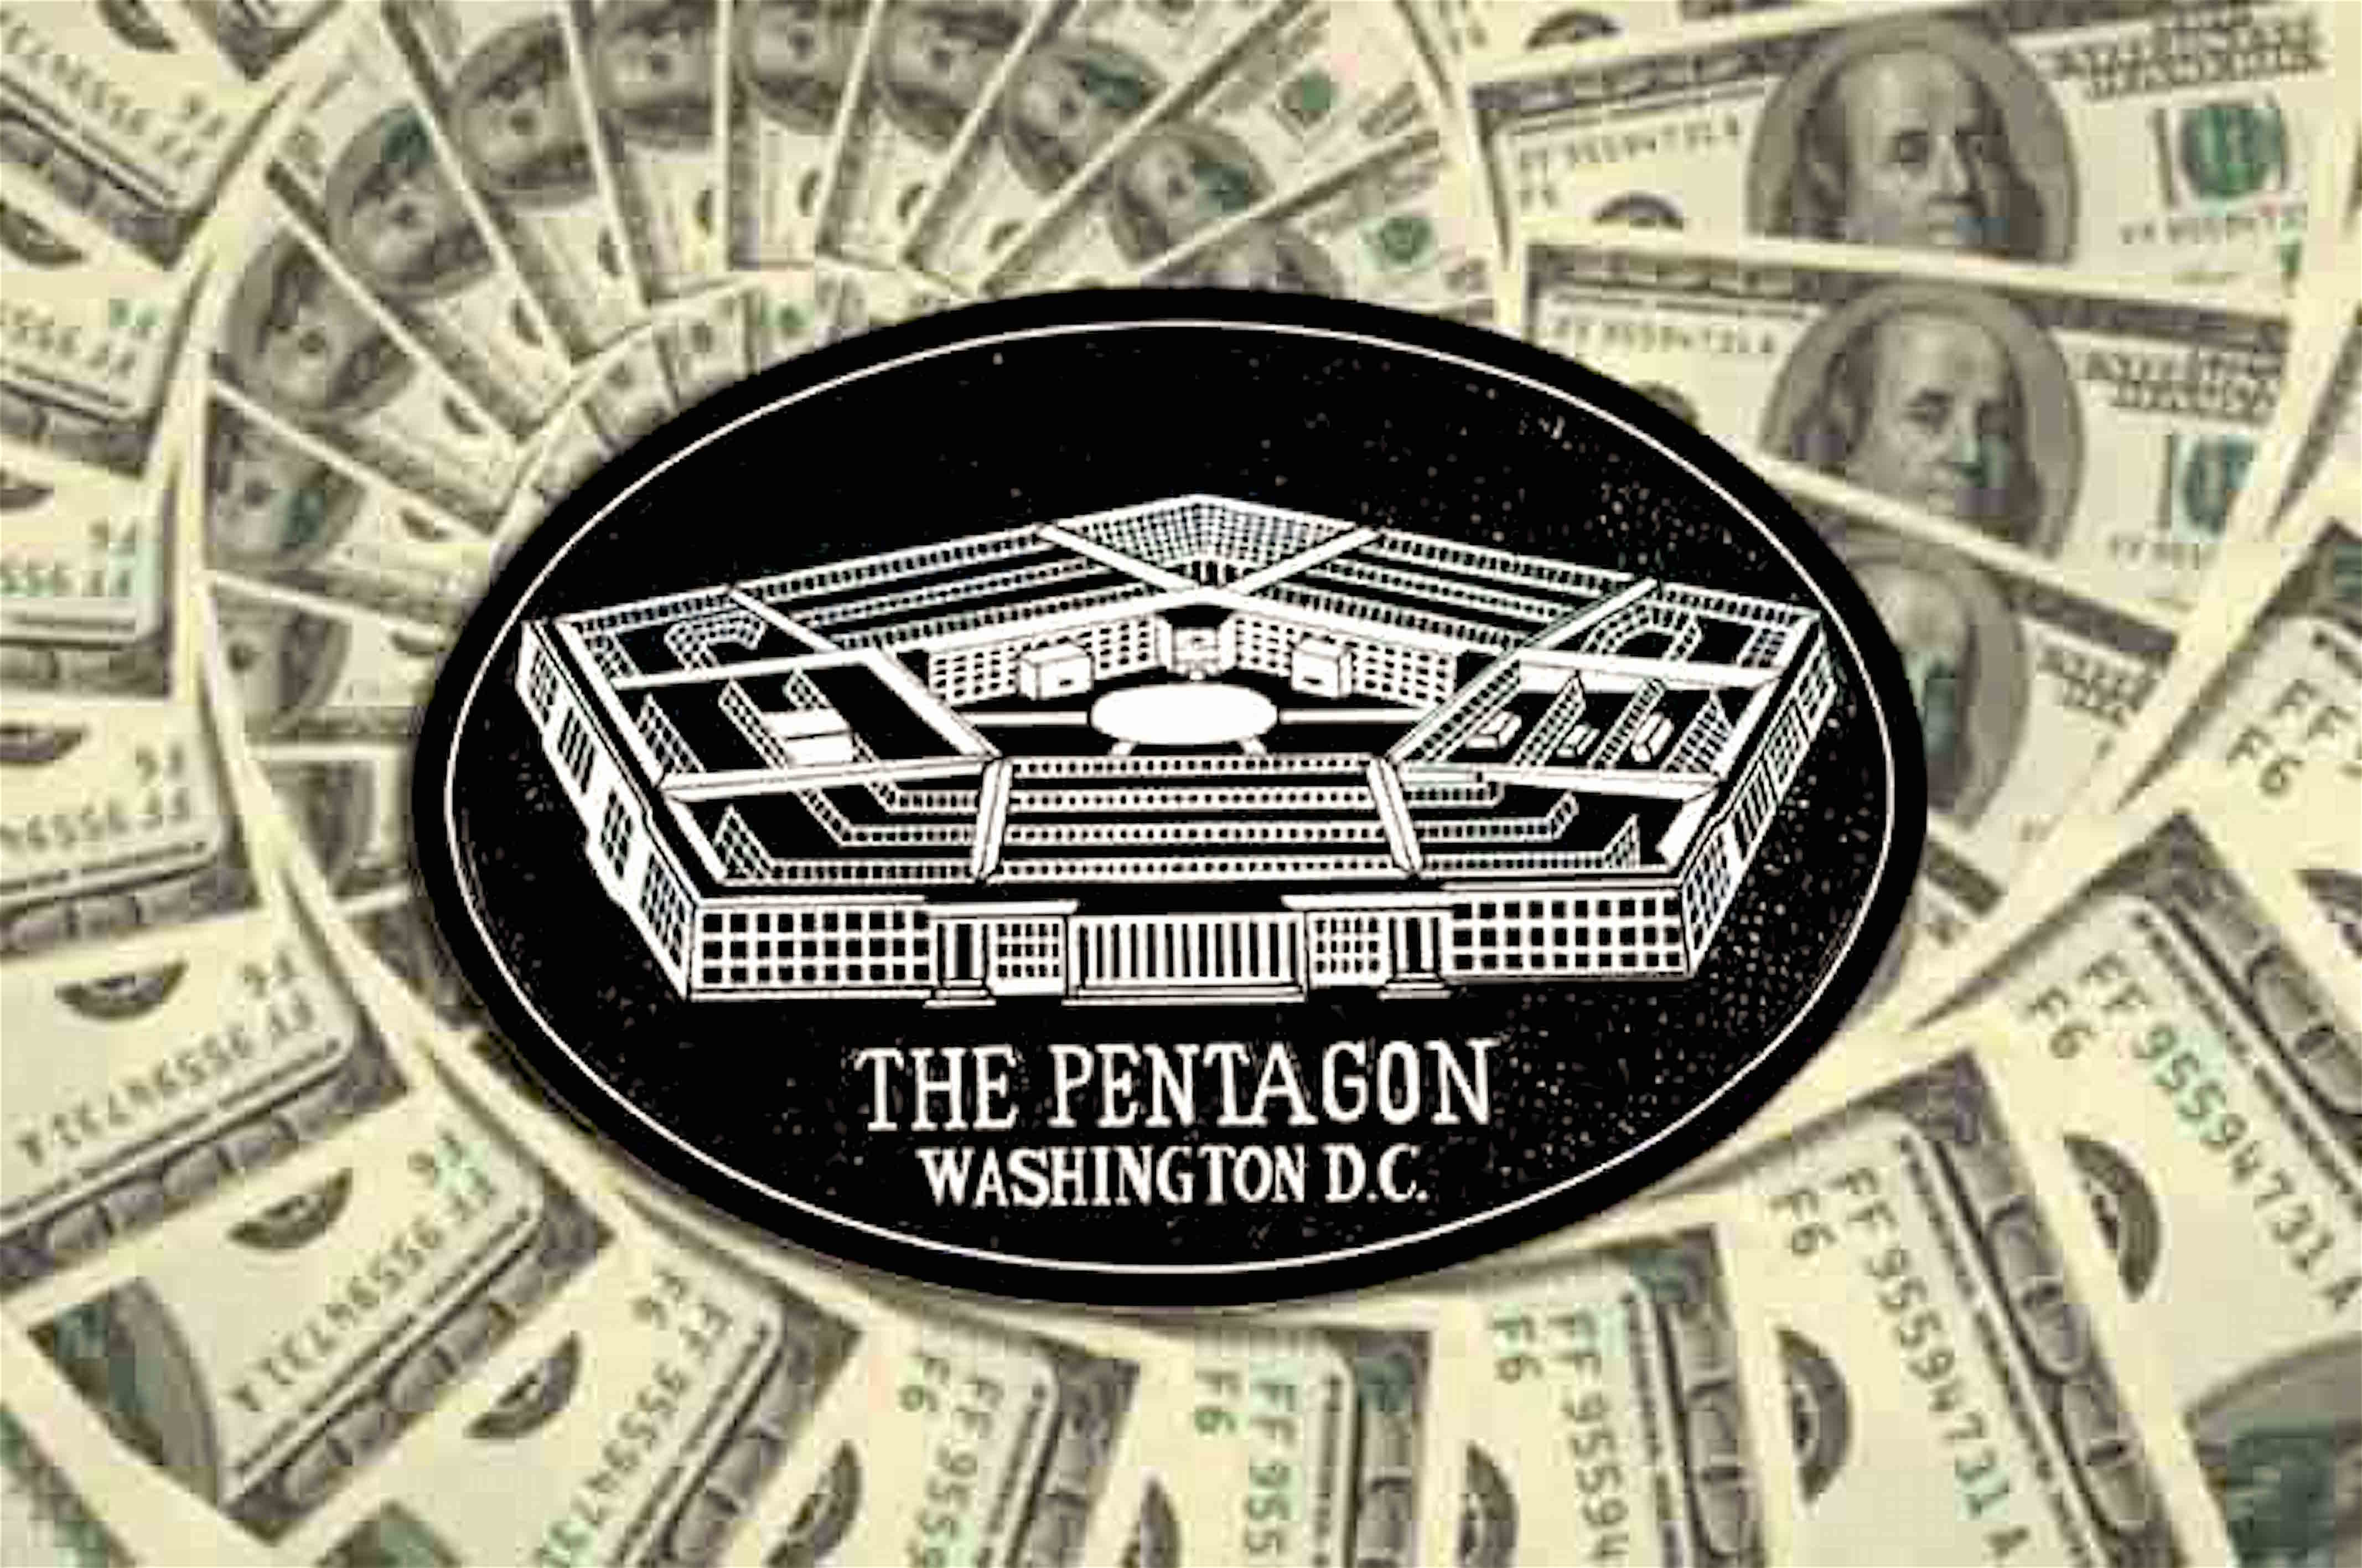 The Pentagon Has Never Been Audited Trillions Of Dollars Are Unaccounted For, Where Has It Gone? (foto CSGlobe)